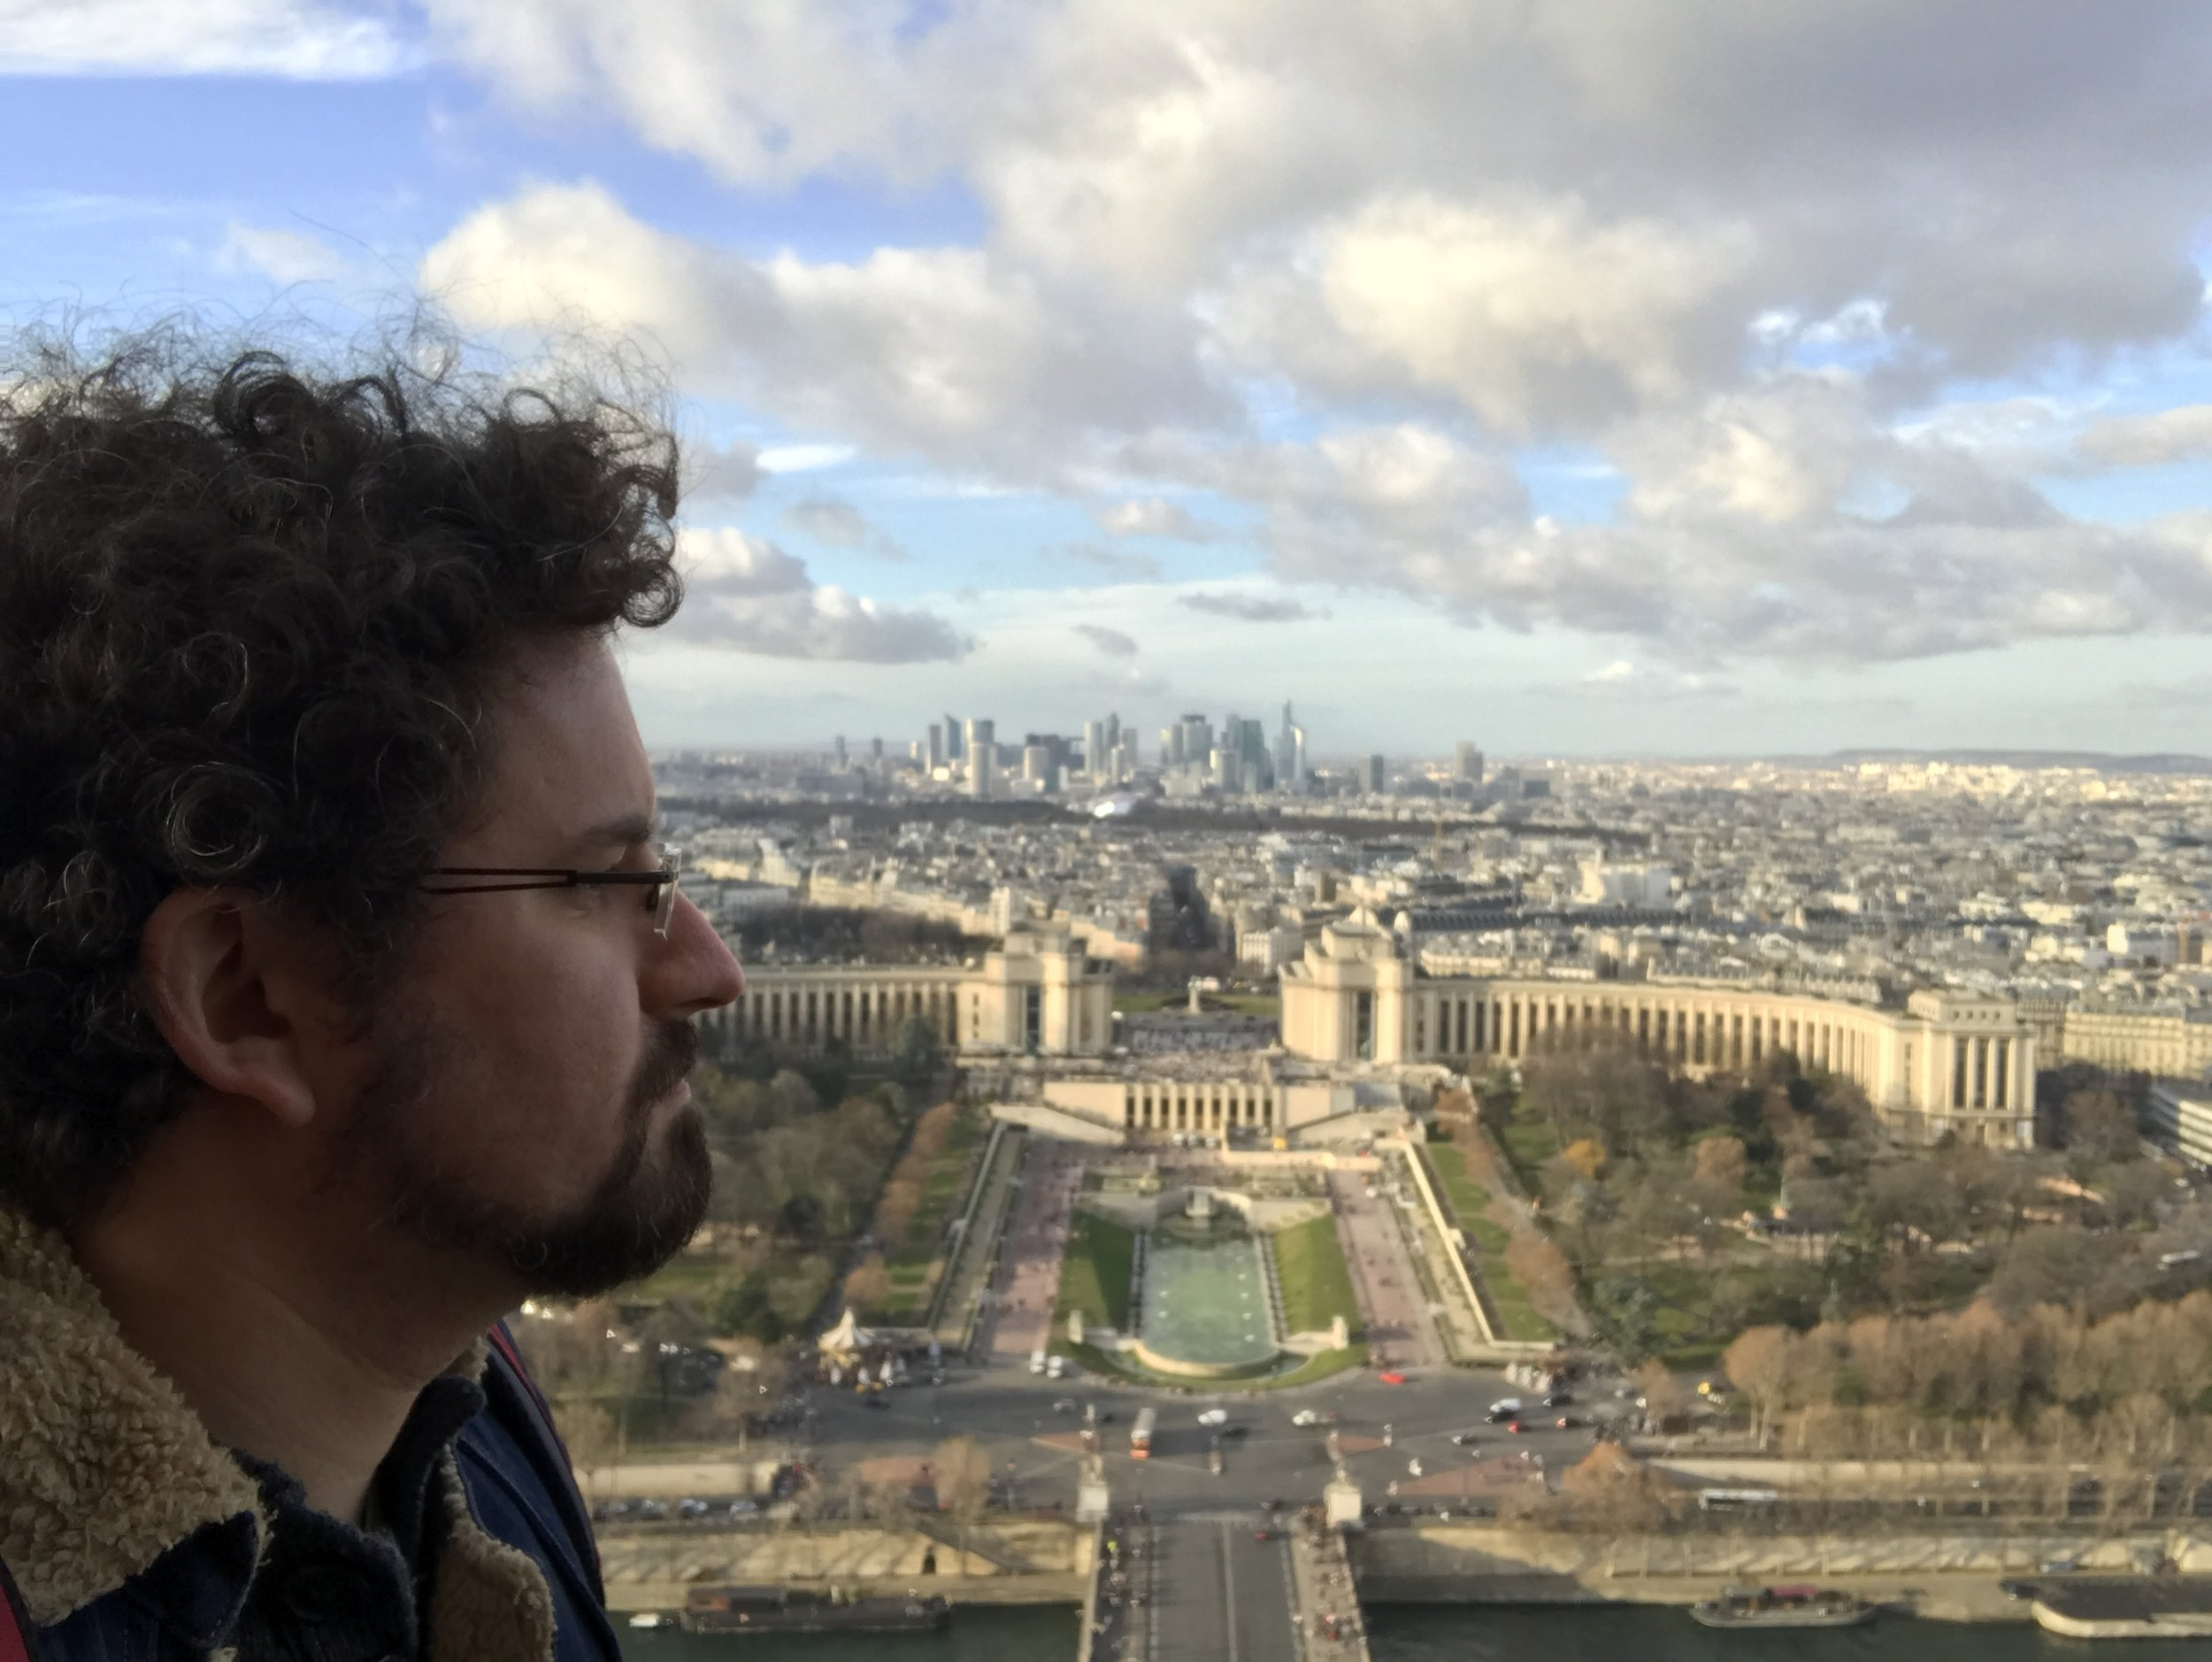 The view from the 2nd floor of the Eiffel Tower